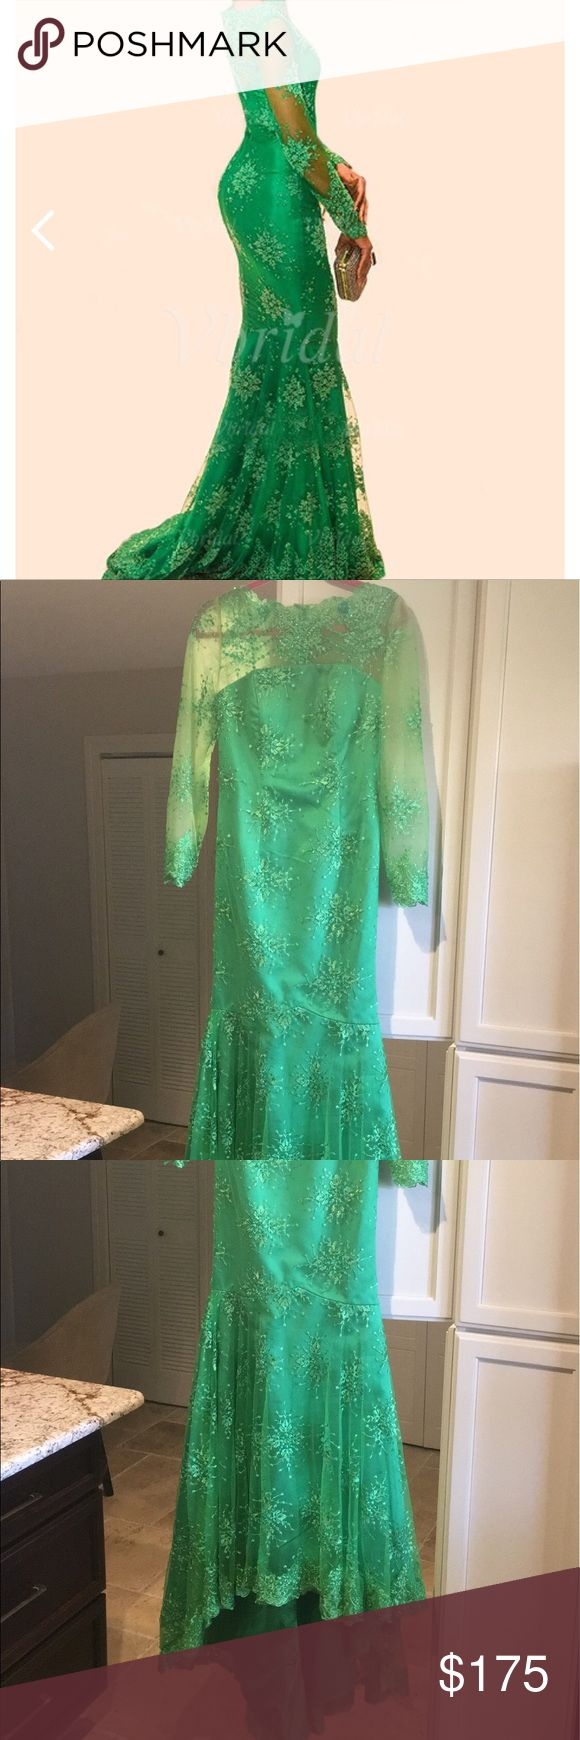 Green Lace Formal Dress Formal Dress. Never warn, great condition. V Bridal Dresses Long Sleeve